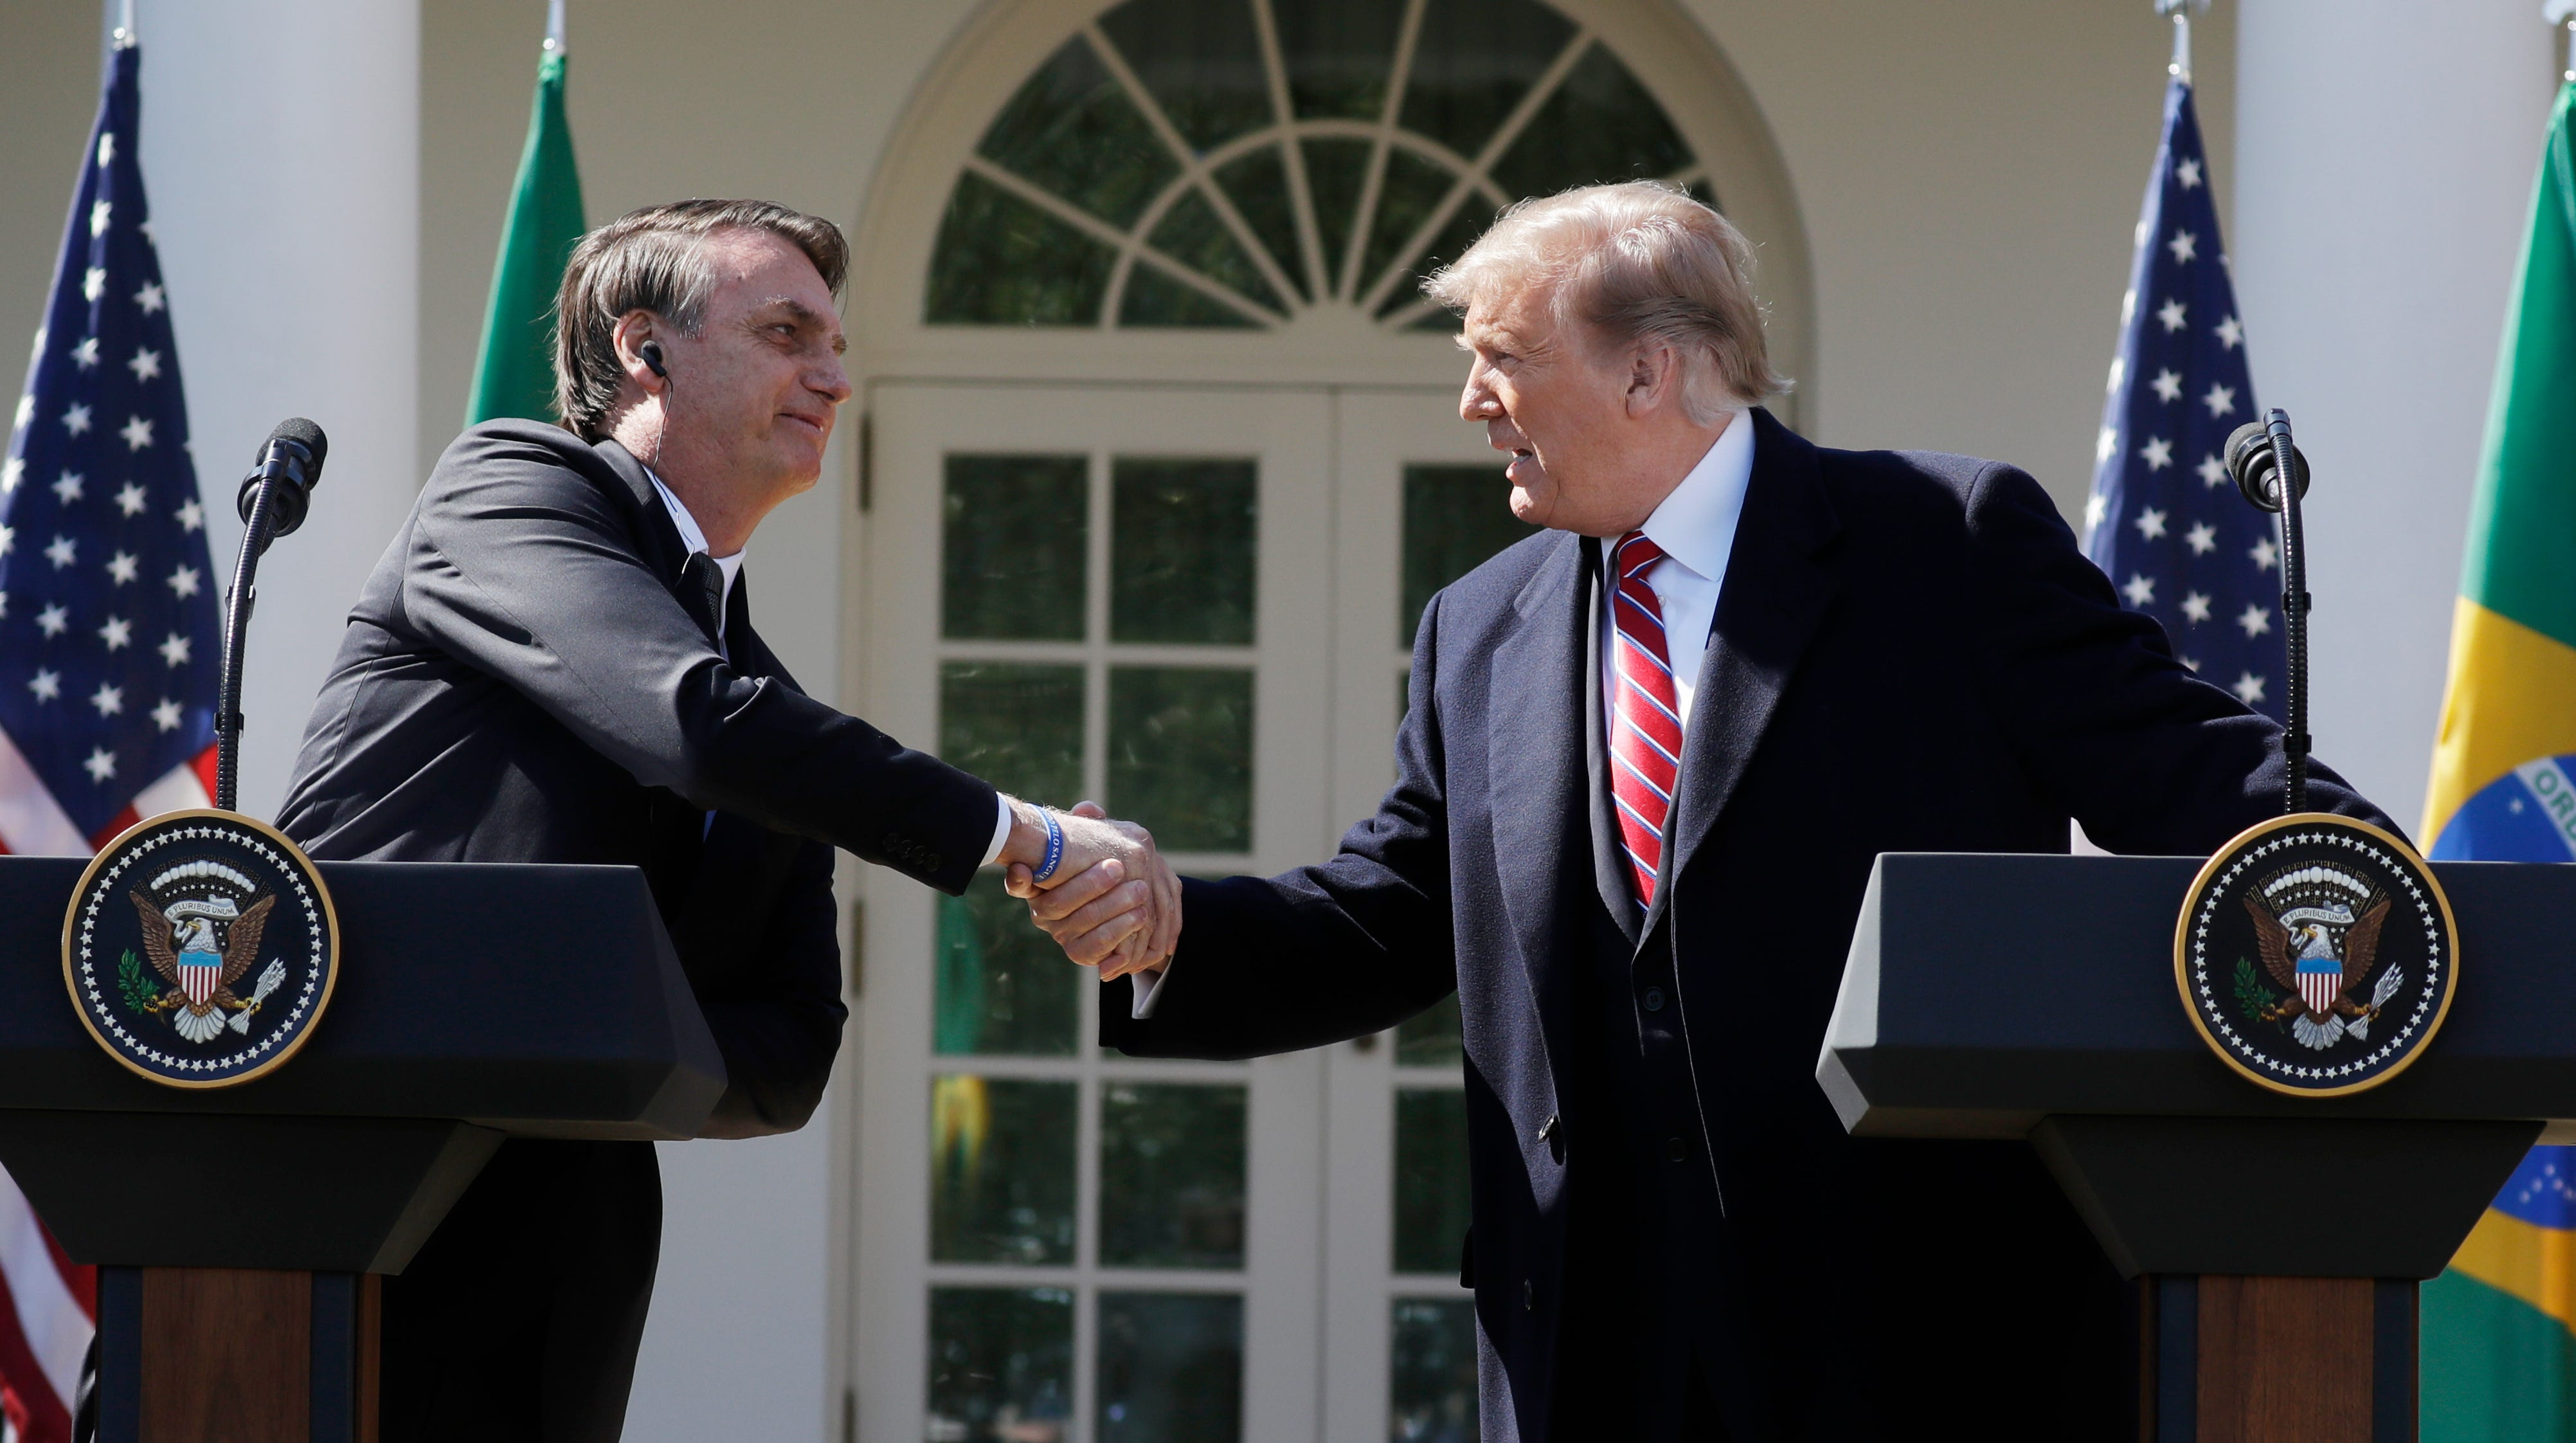 President Donald Trump greets Brazilian President Jair Bolsonaro during a news conference in the Rose Garden.